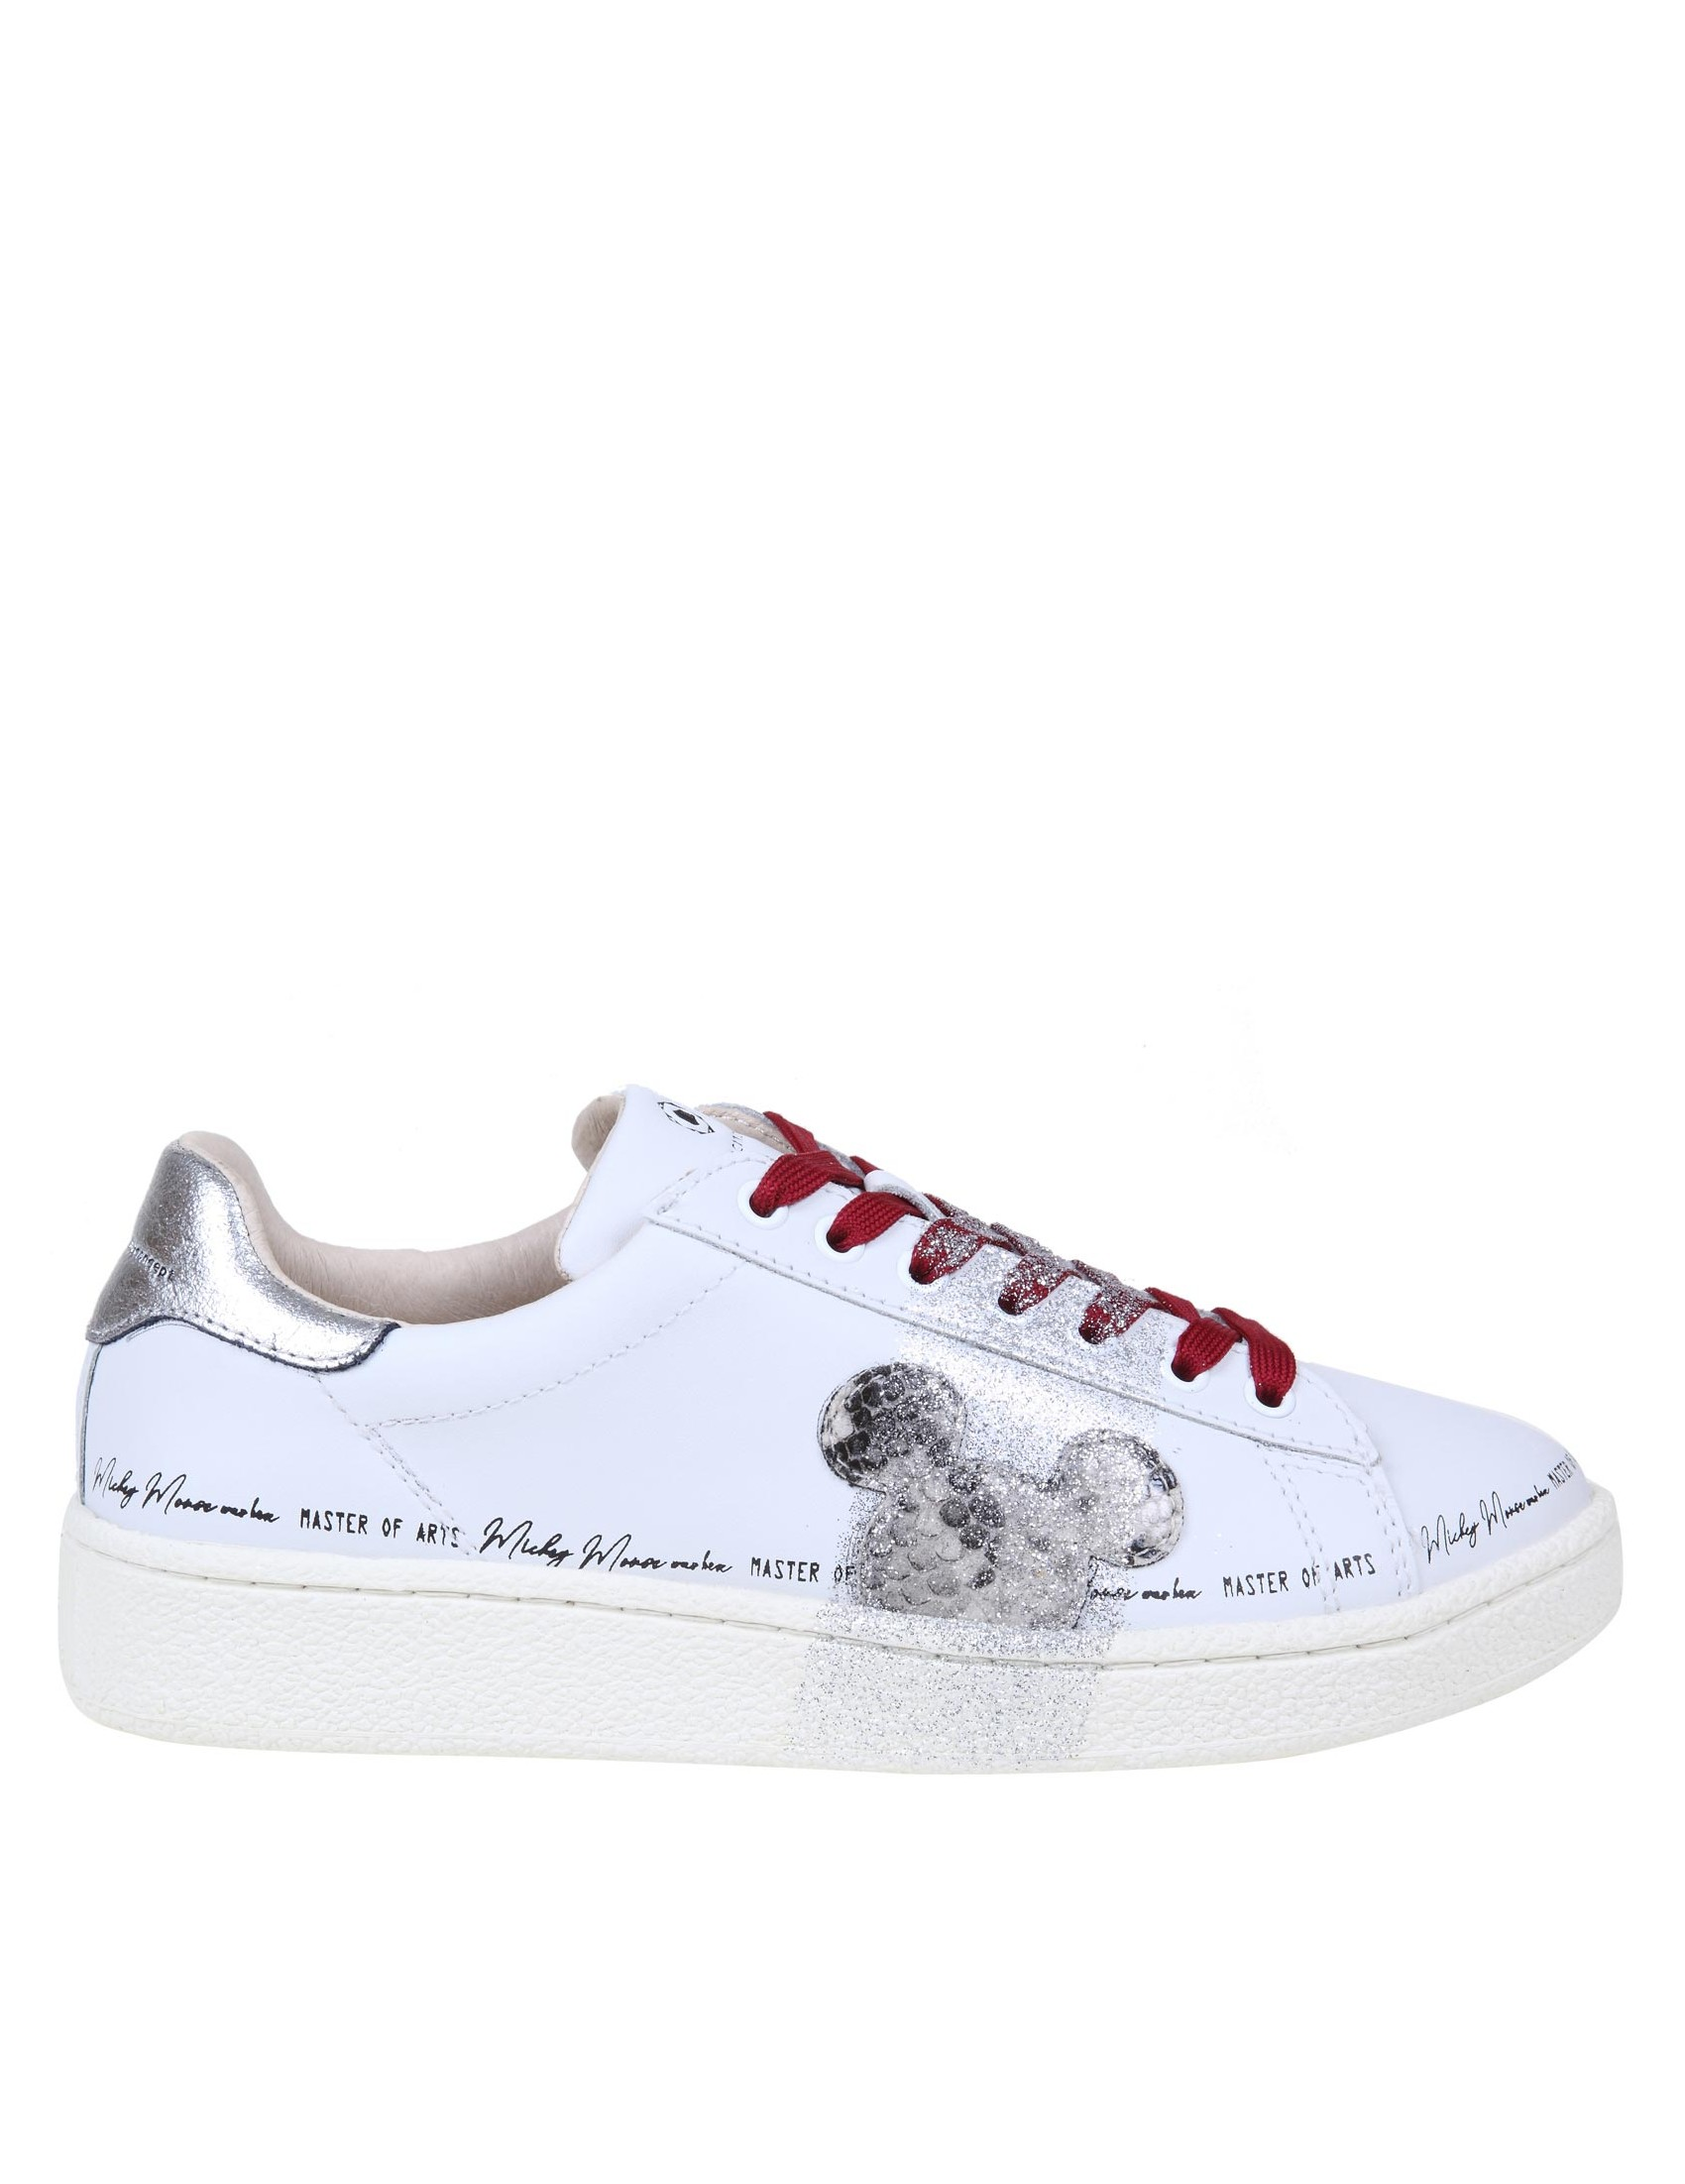 Moa Master Of Arts Leathers MOA SNEAKERS IN LEATHER WITH GLITTER DETAIL